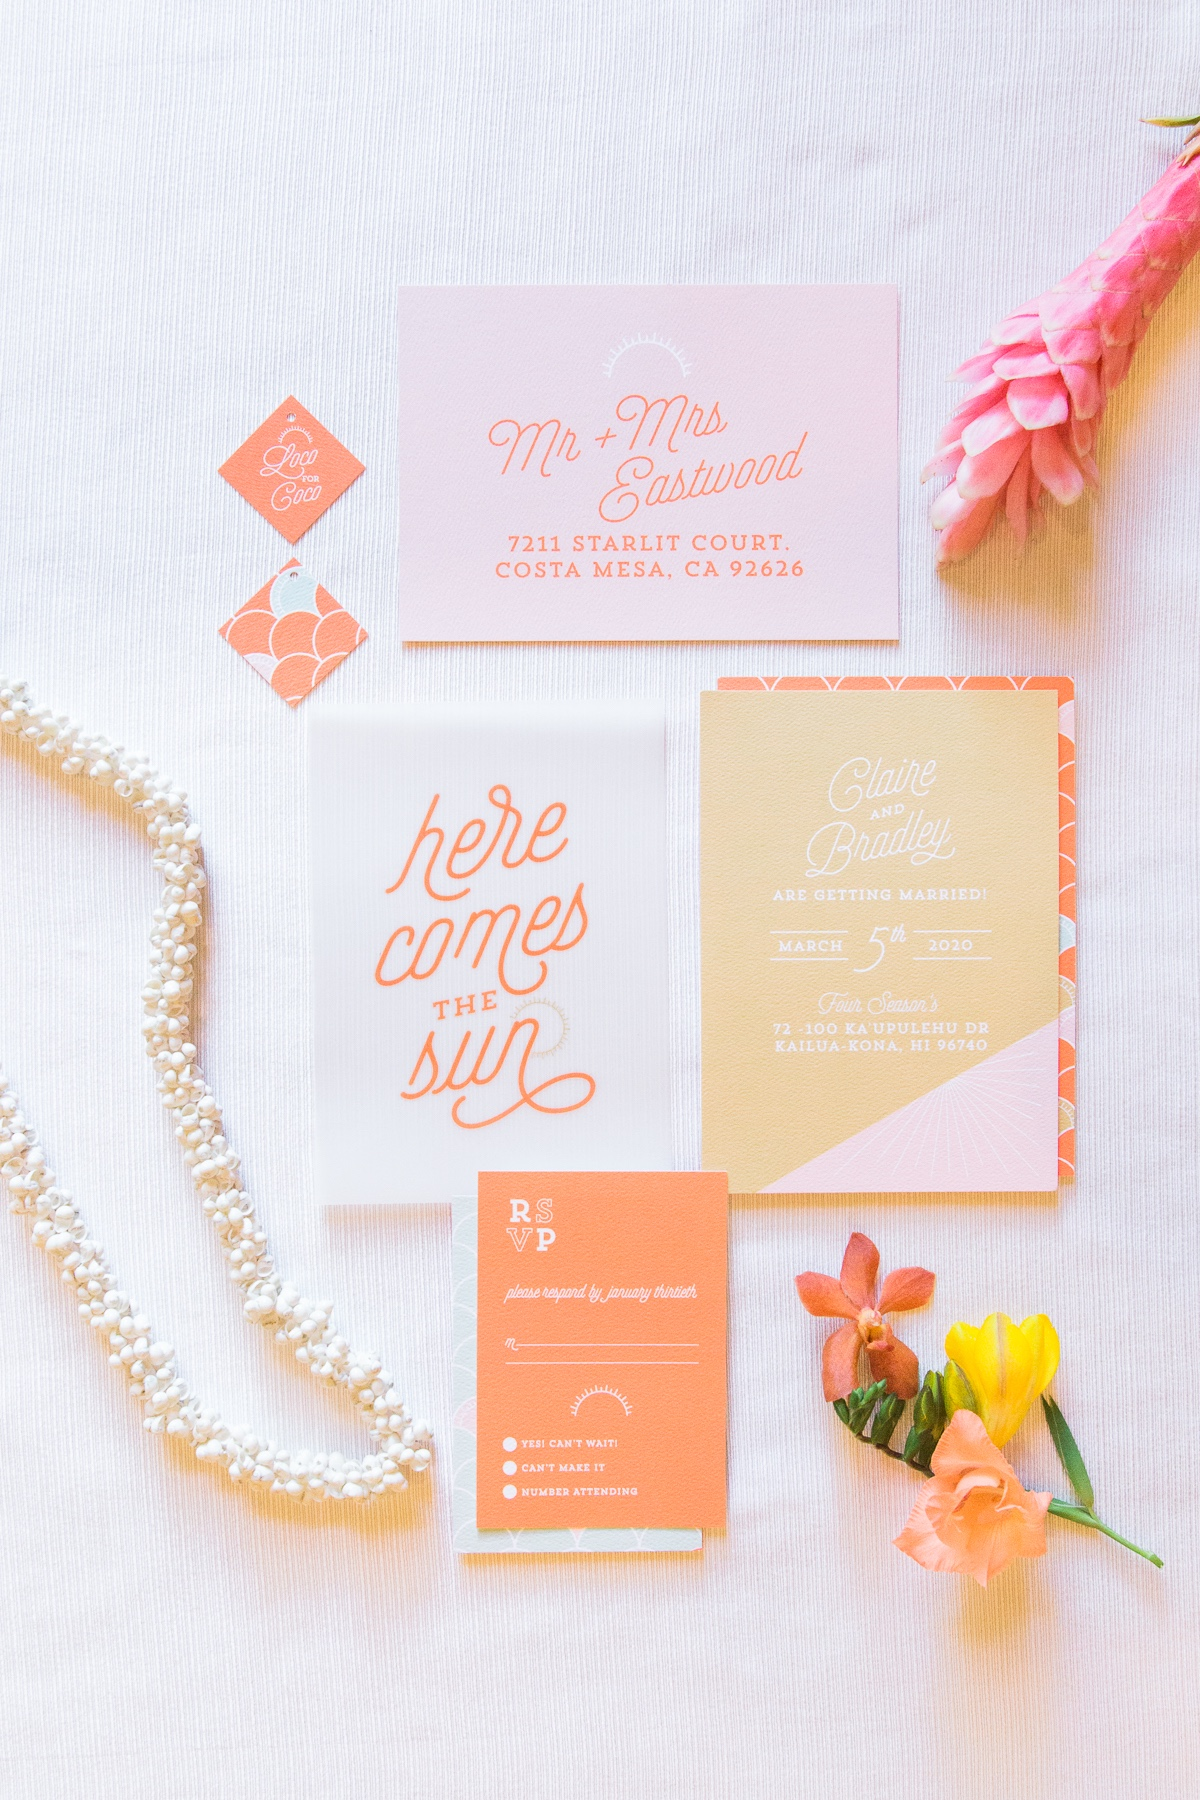 sunny wedding invitations designed by Yellow Heart Art